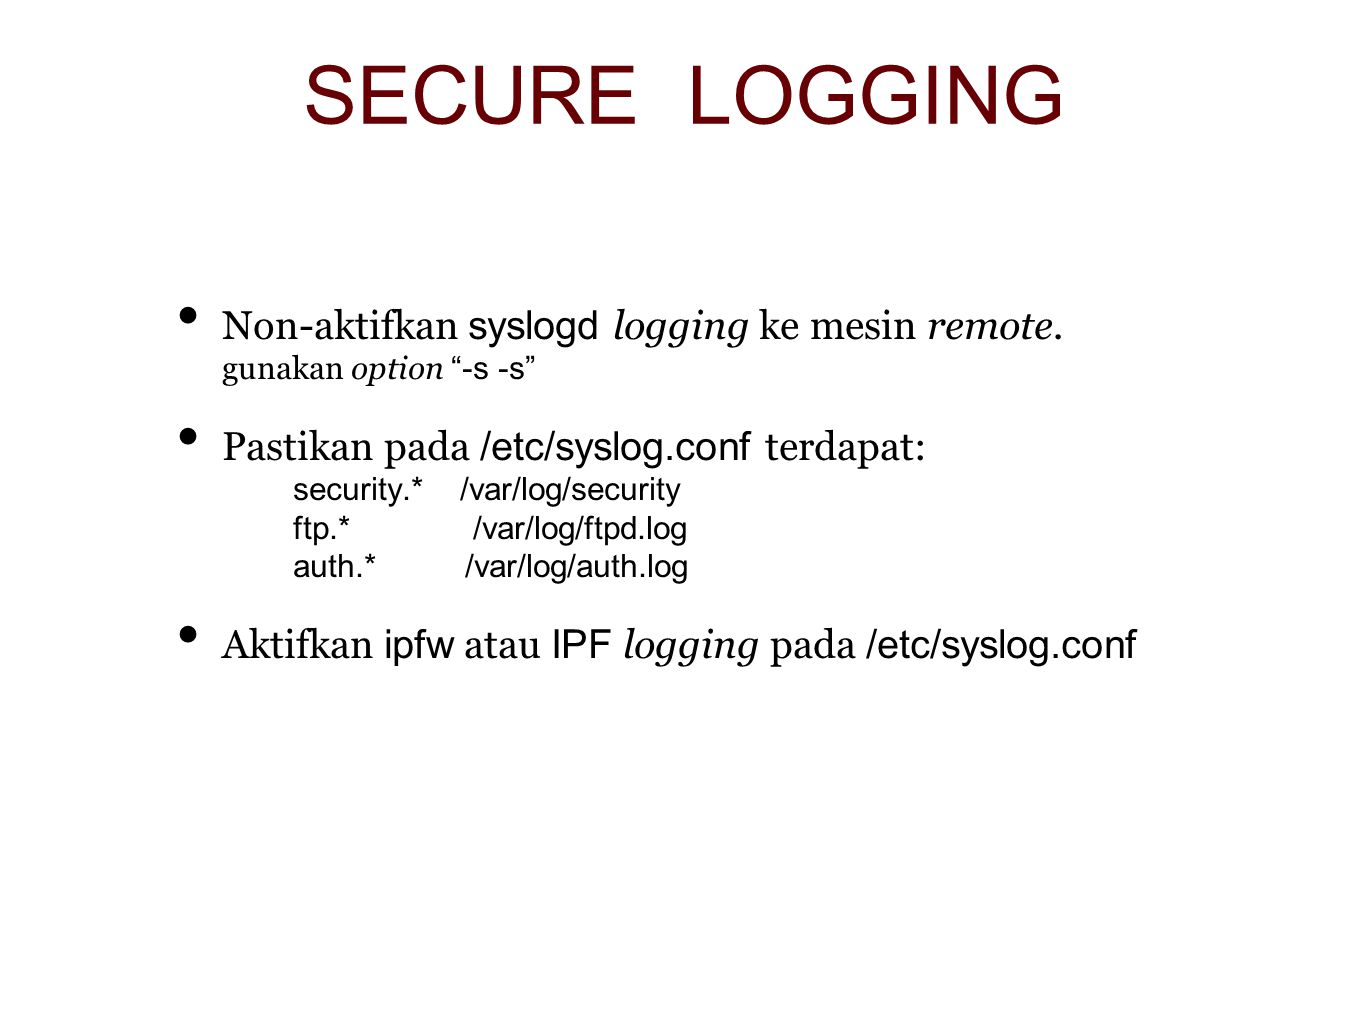 SECURE LOGGING Non-aktifkan syslogd logging ke mesin remote. gunakan option -s -s